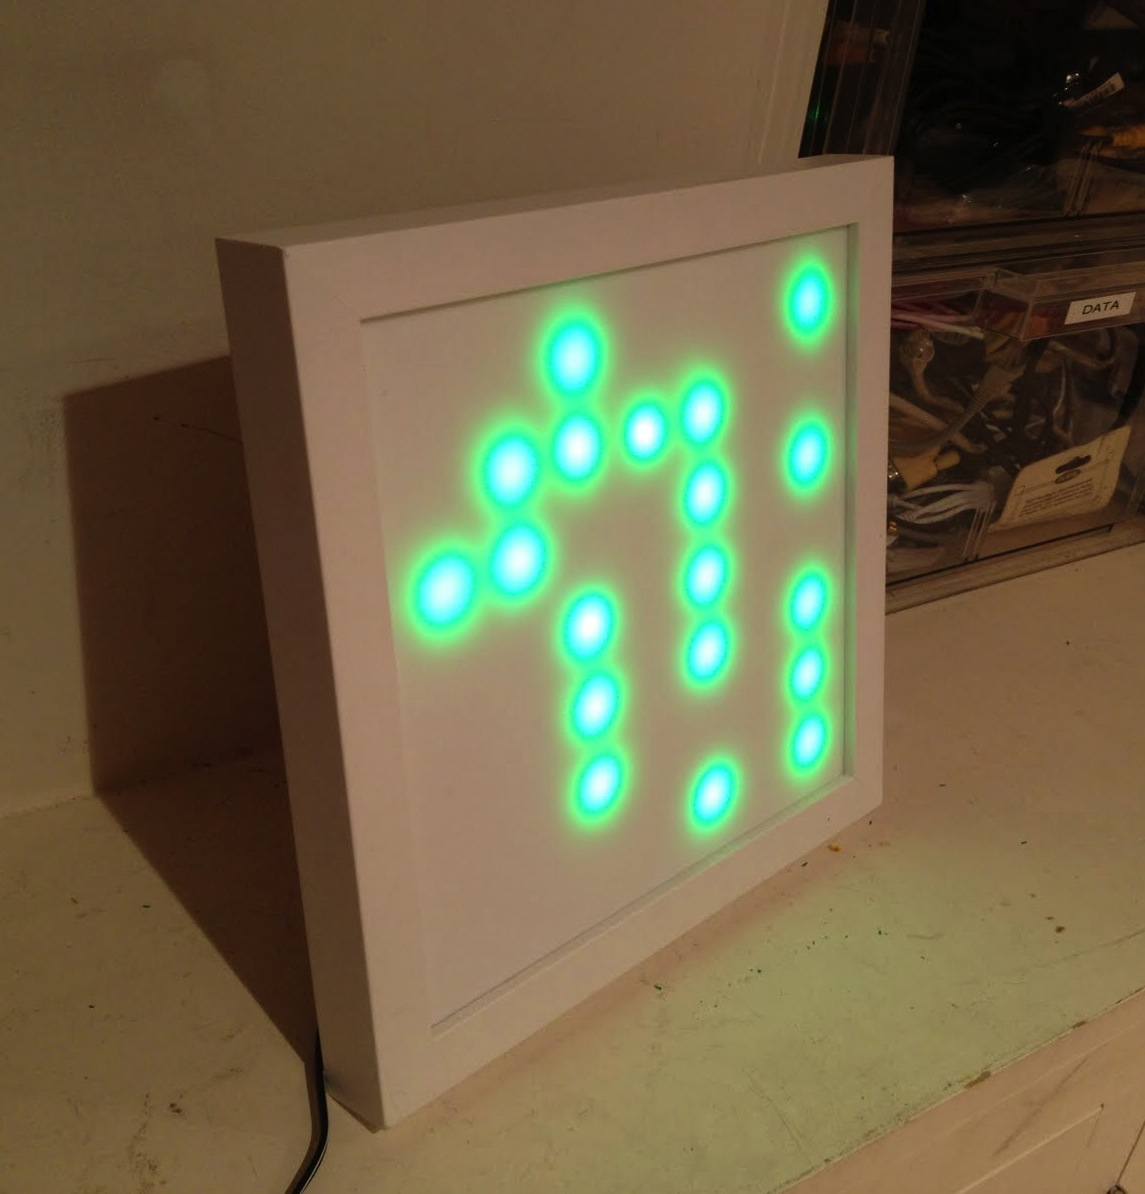 john graham cumming turning ge color effects g 35 christmas lights into a 7x7 display with arduino